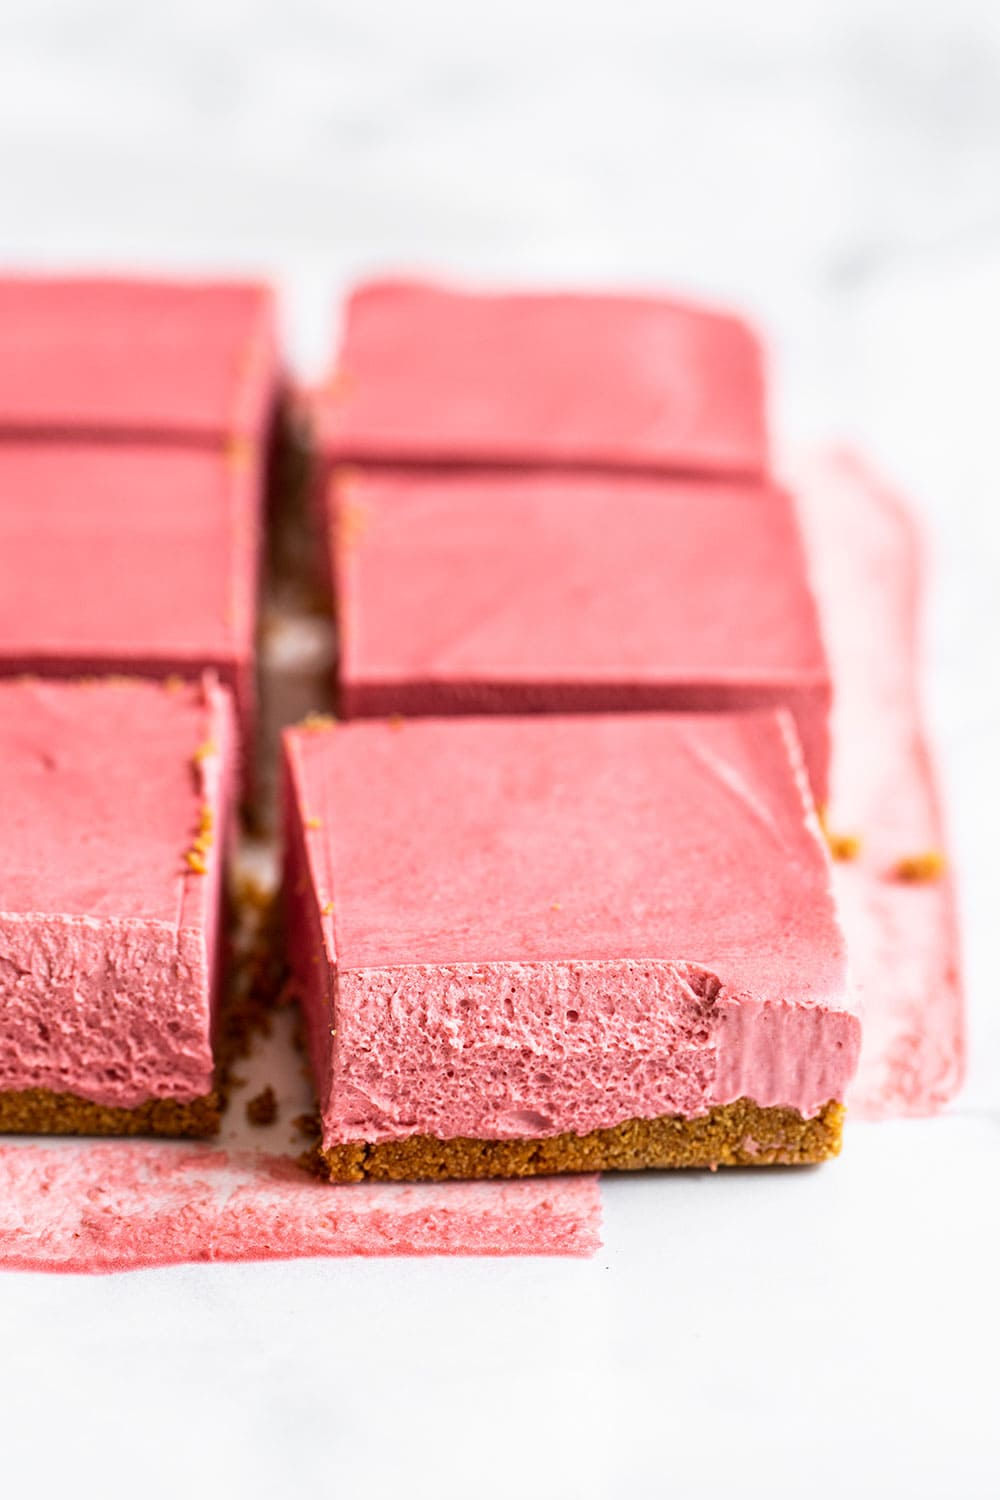 Row of no bake strawberry cheesecake sliced into perfect squares